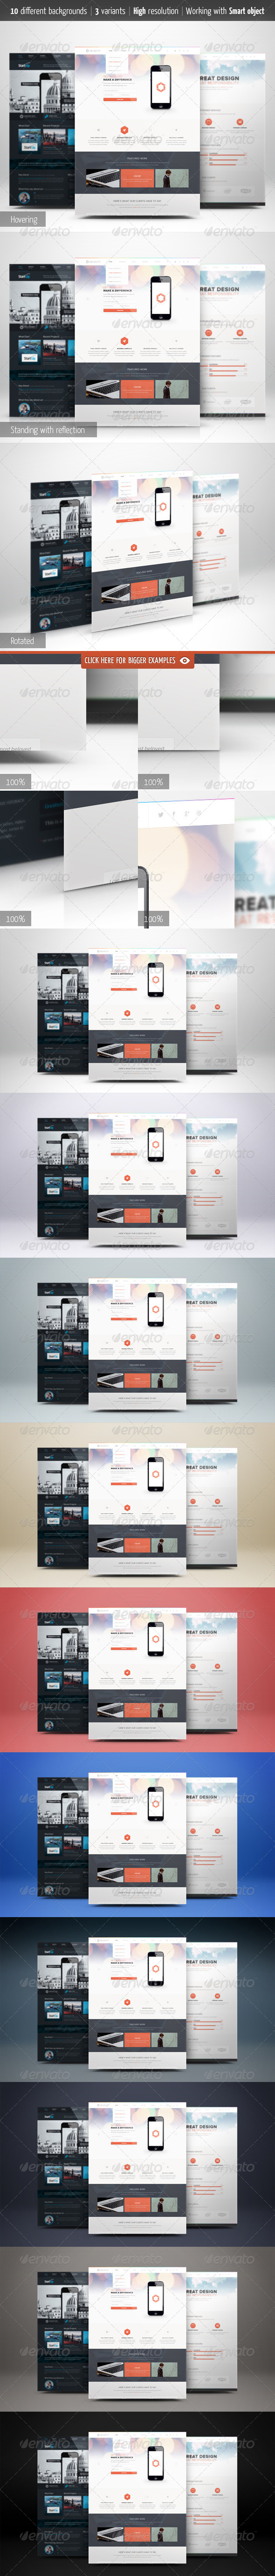 Web Page Presentation Mockup with Studio Backdrops - Website Displays